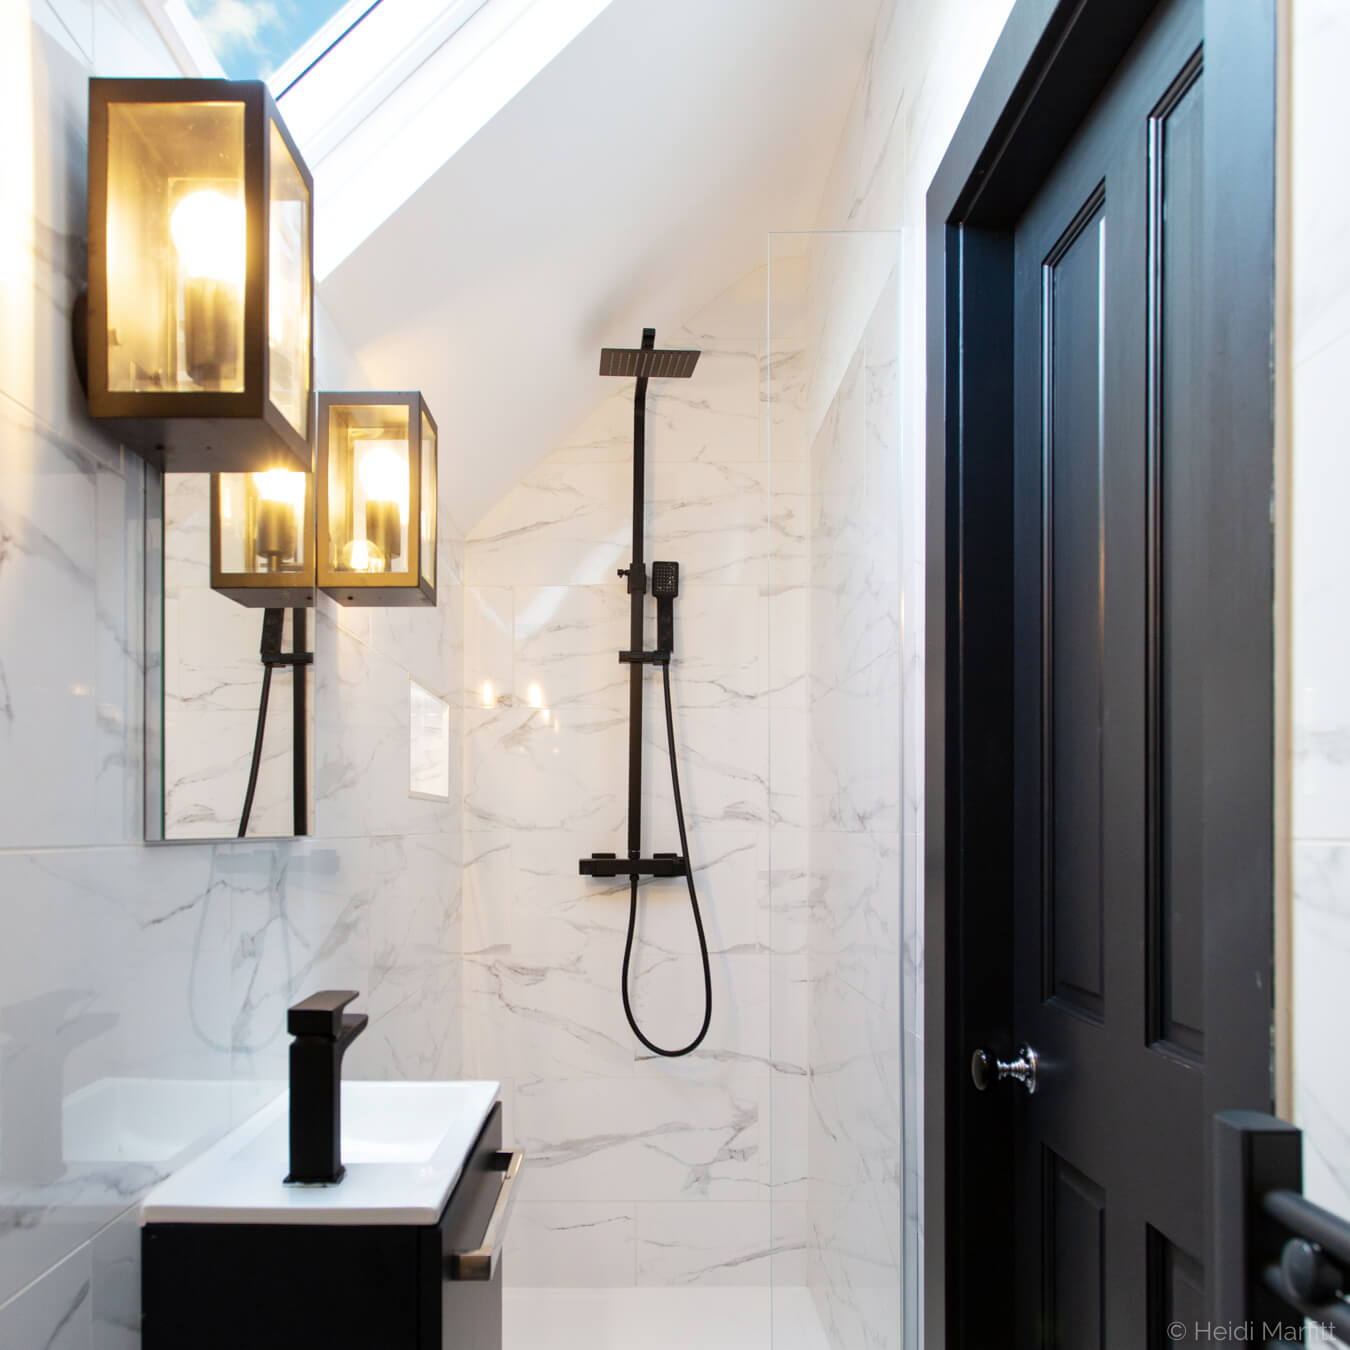 Black taps and shower give an edge to this attic en suite showeroom